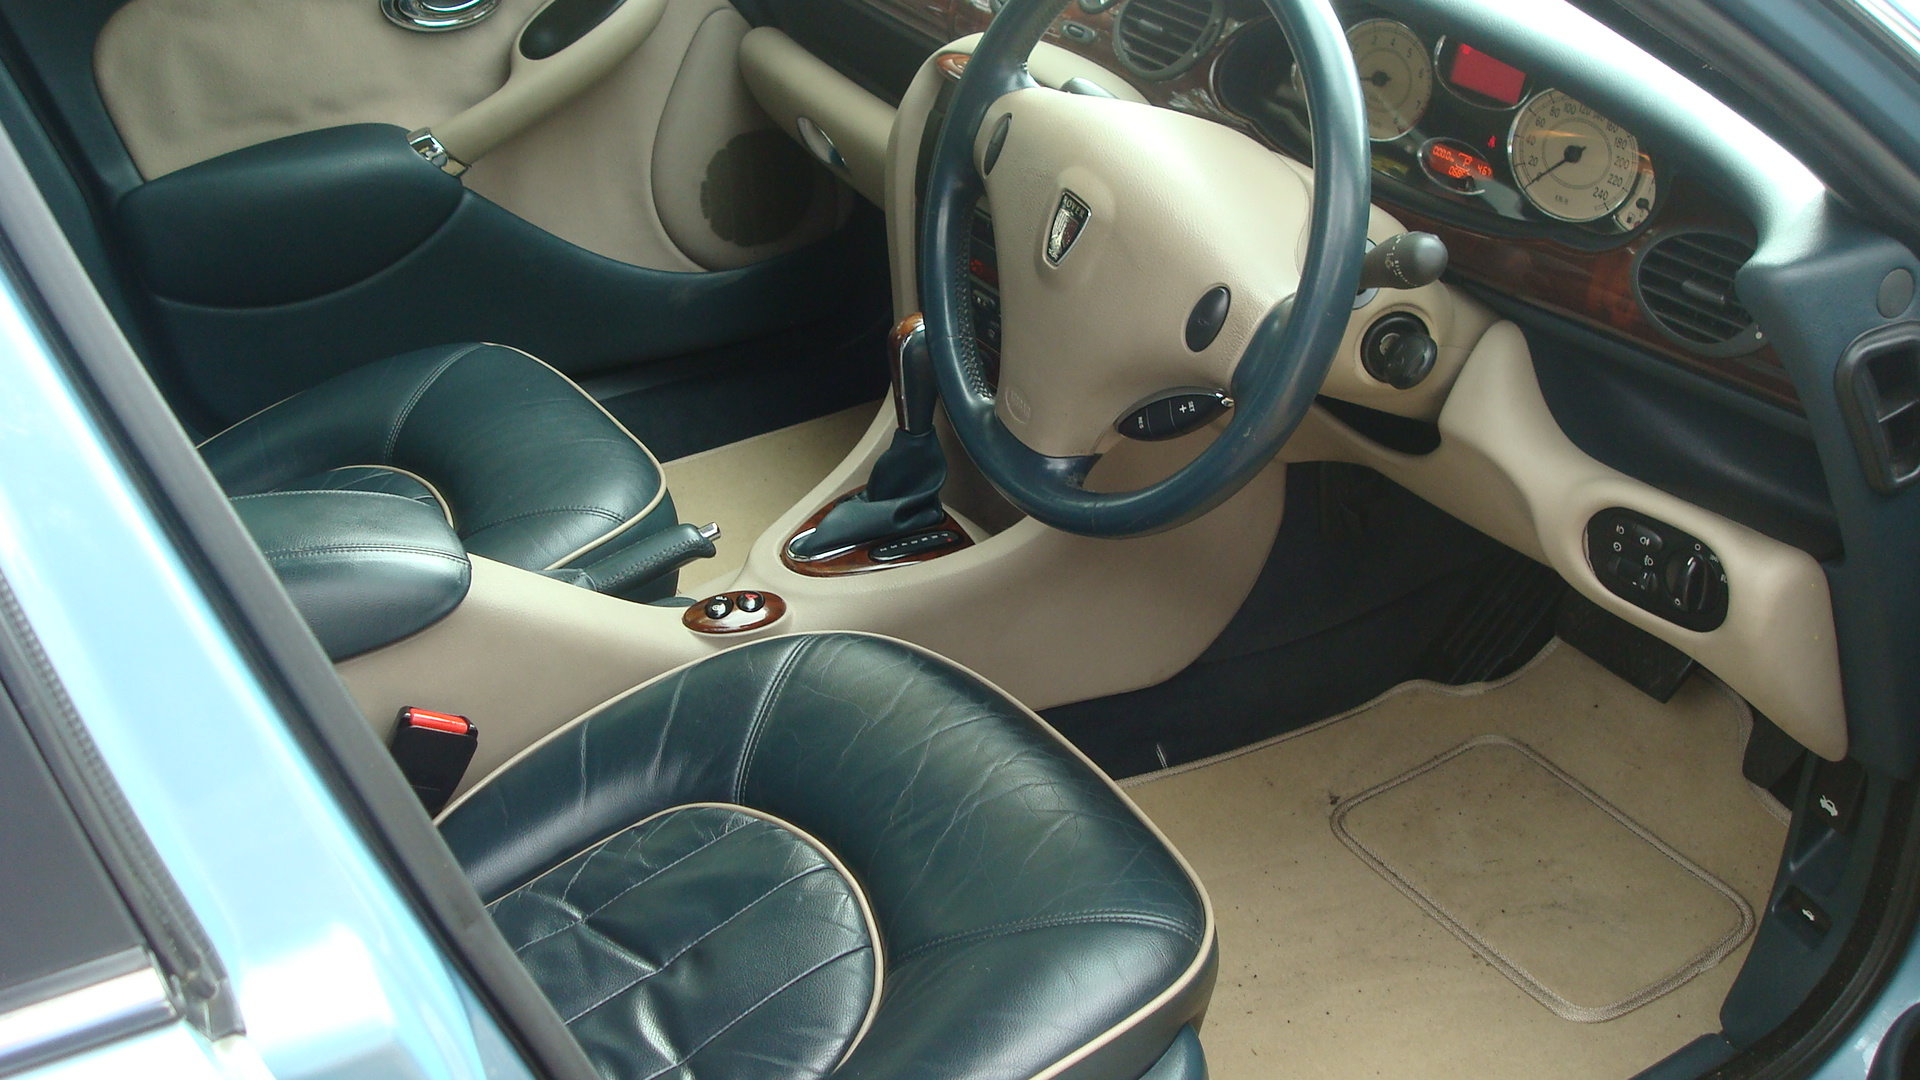 1999 Rover 75 2.5 V6 Connoisseur SE For Sale (picture 5 of 6)